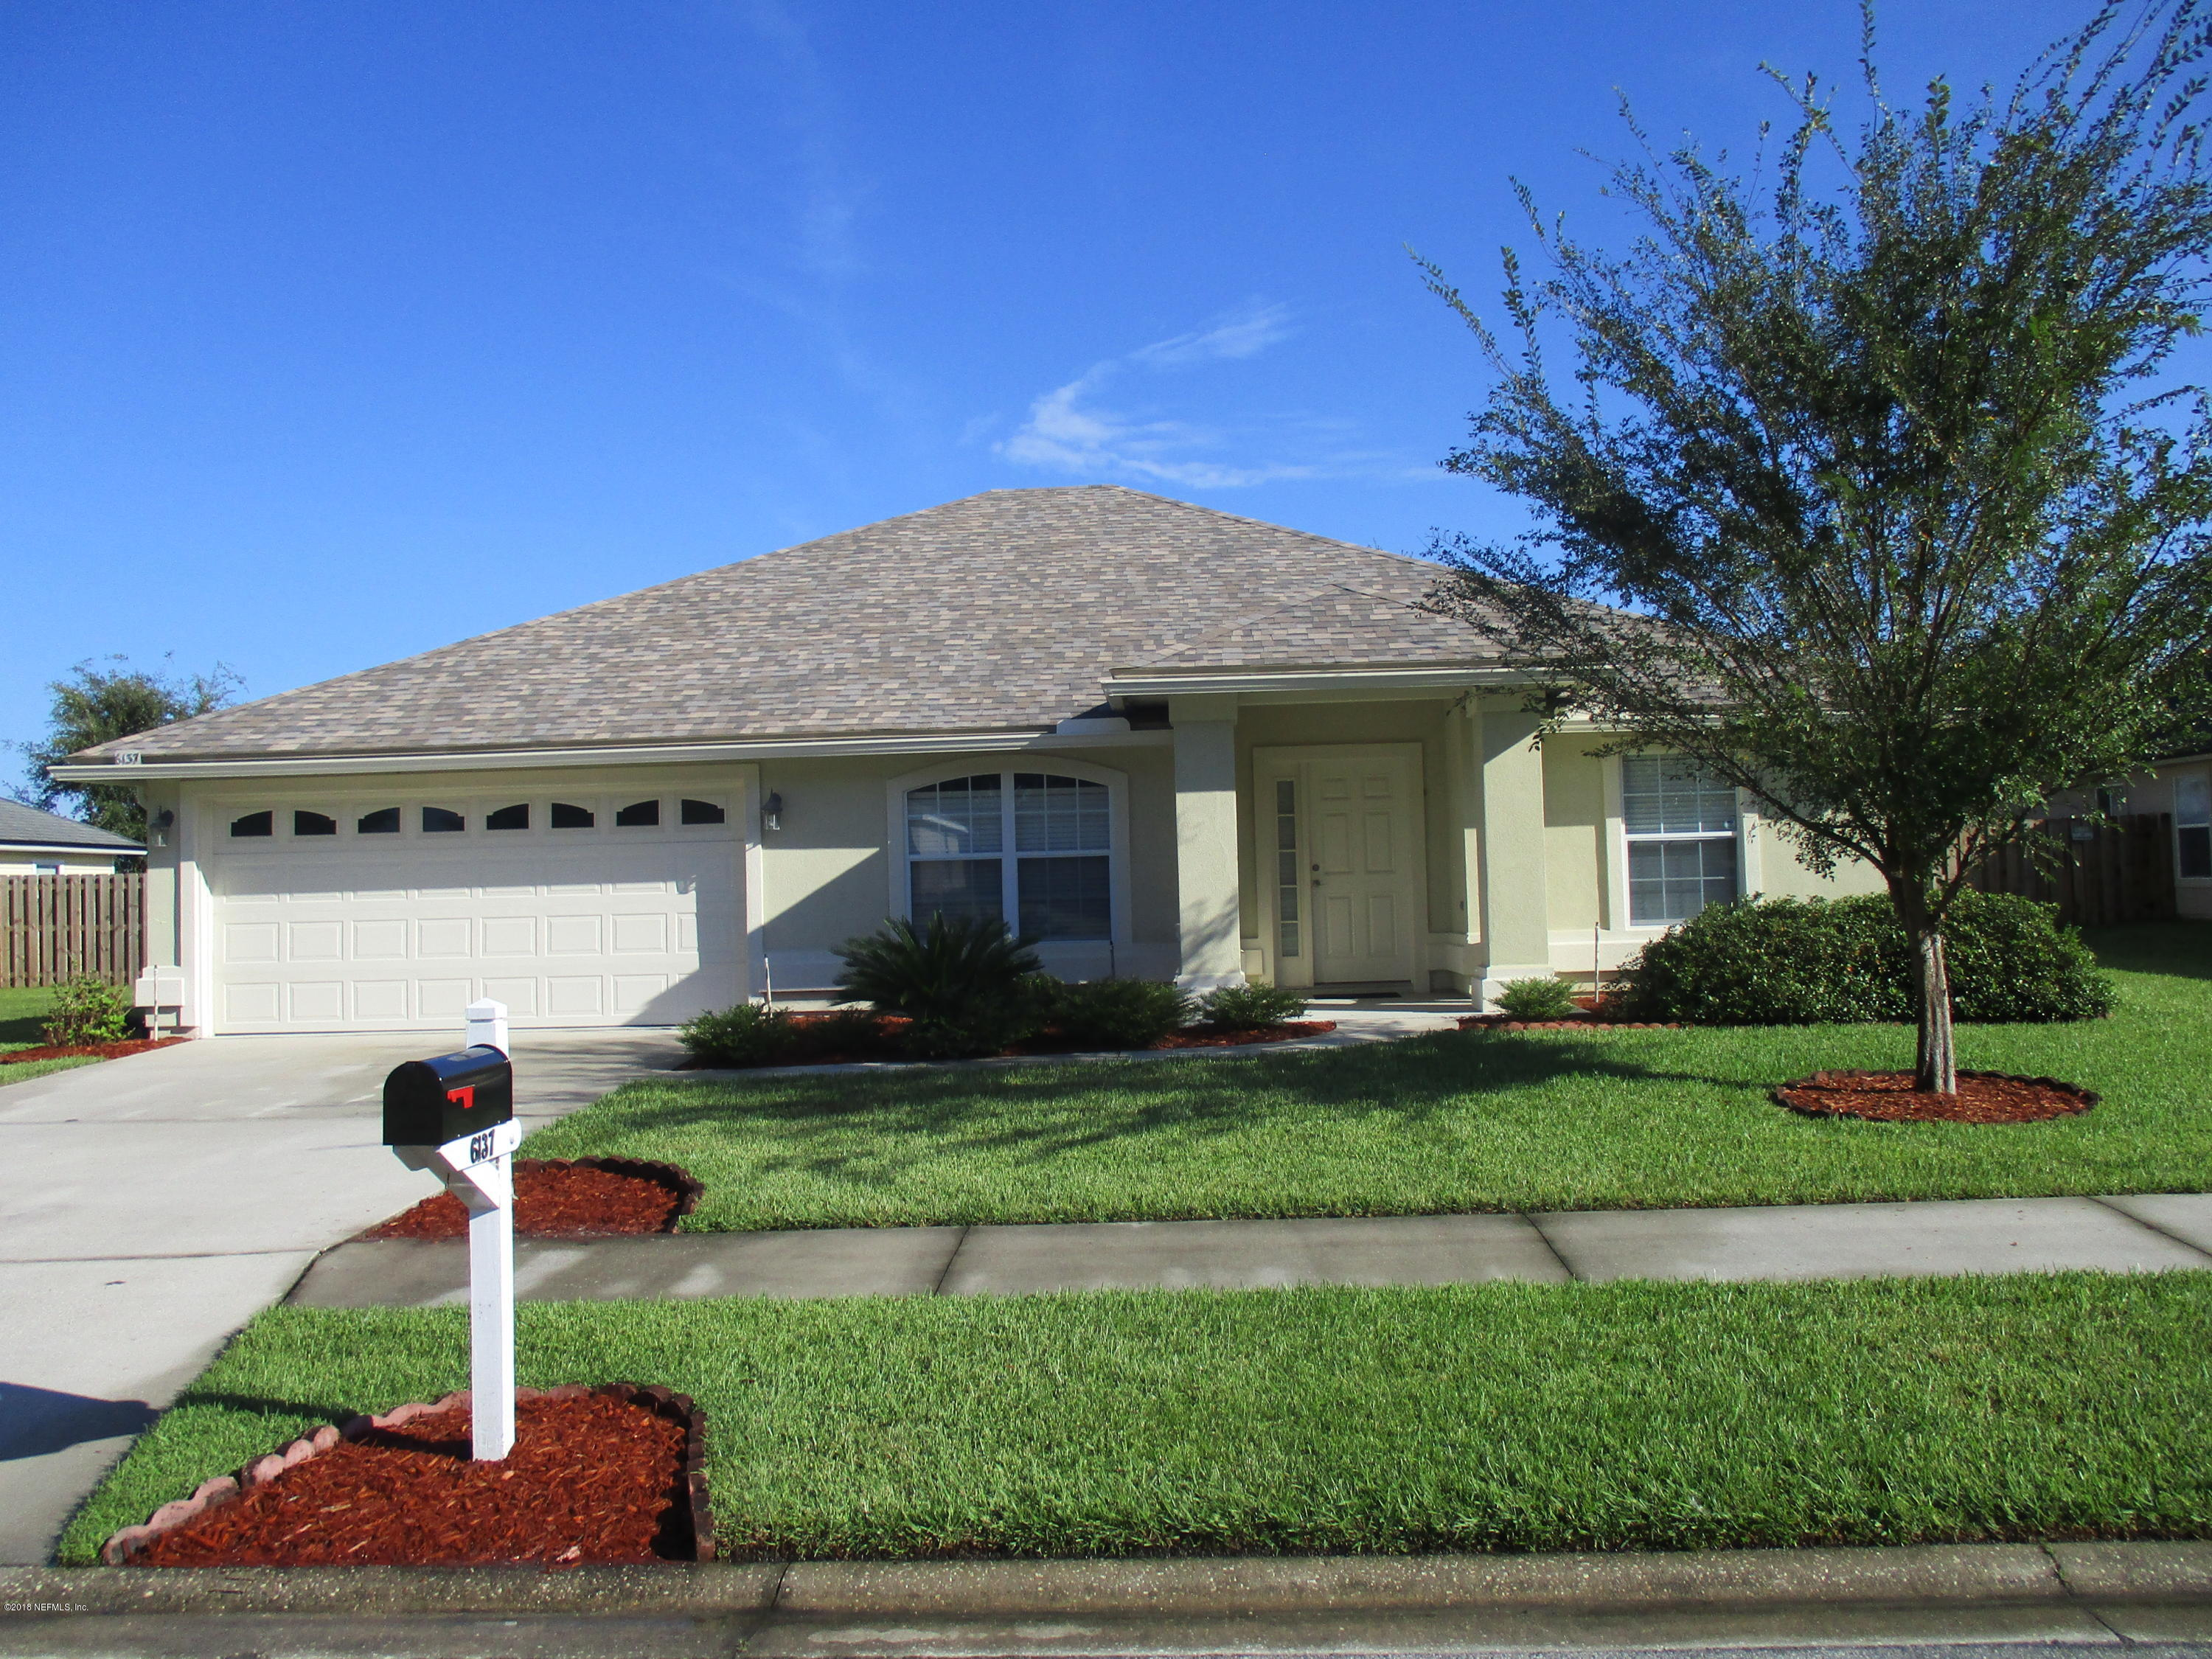 6137 SANDS POINTE, MACCLENNY, FLORIDA 32063, 4 Bedrooms Bedrooms, ,2 BathroomsBathrooms,Residential - single family,For sale,SANDS POINTE,960125